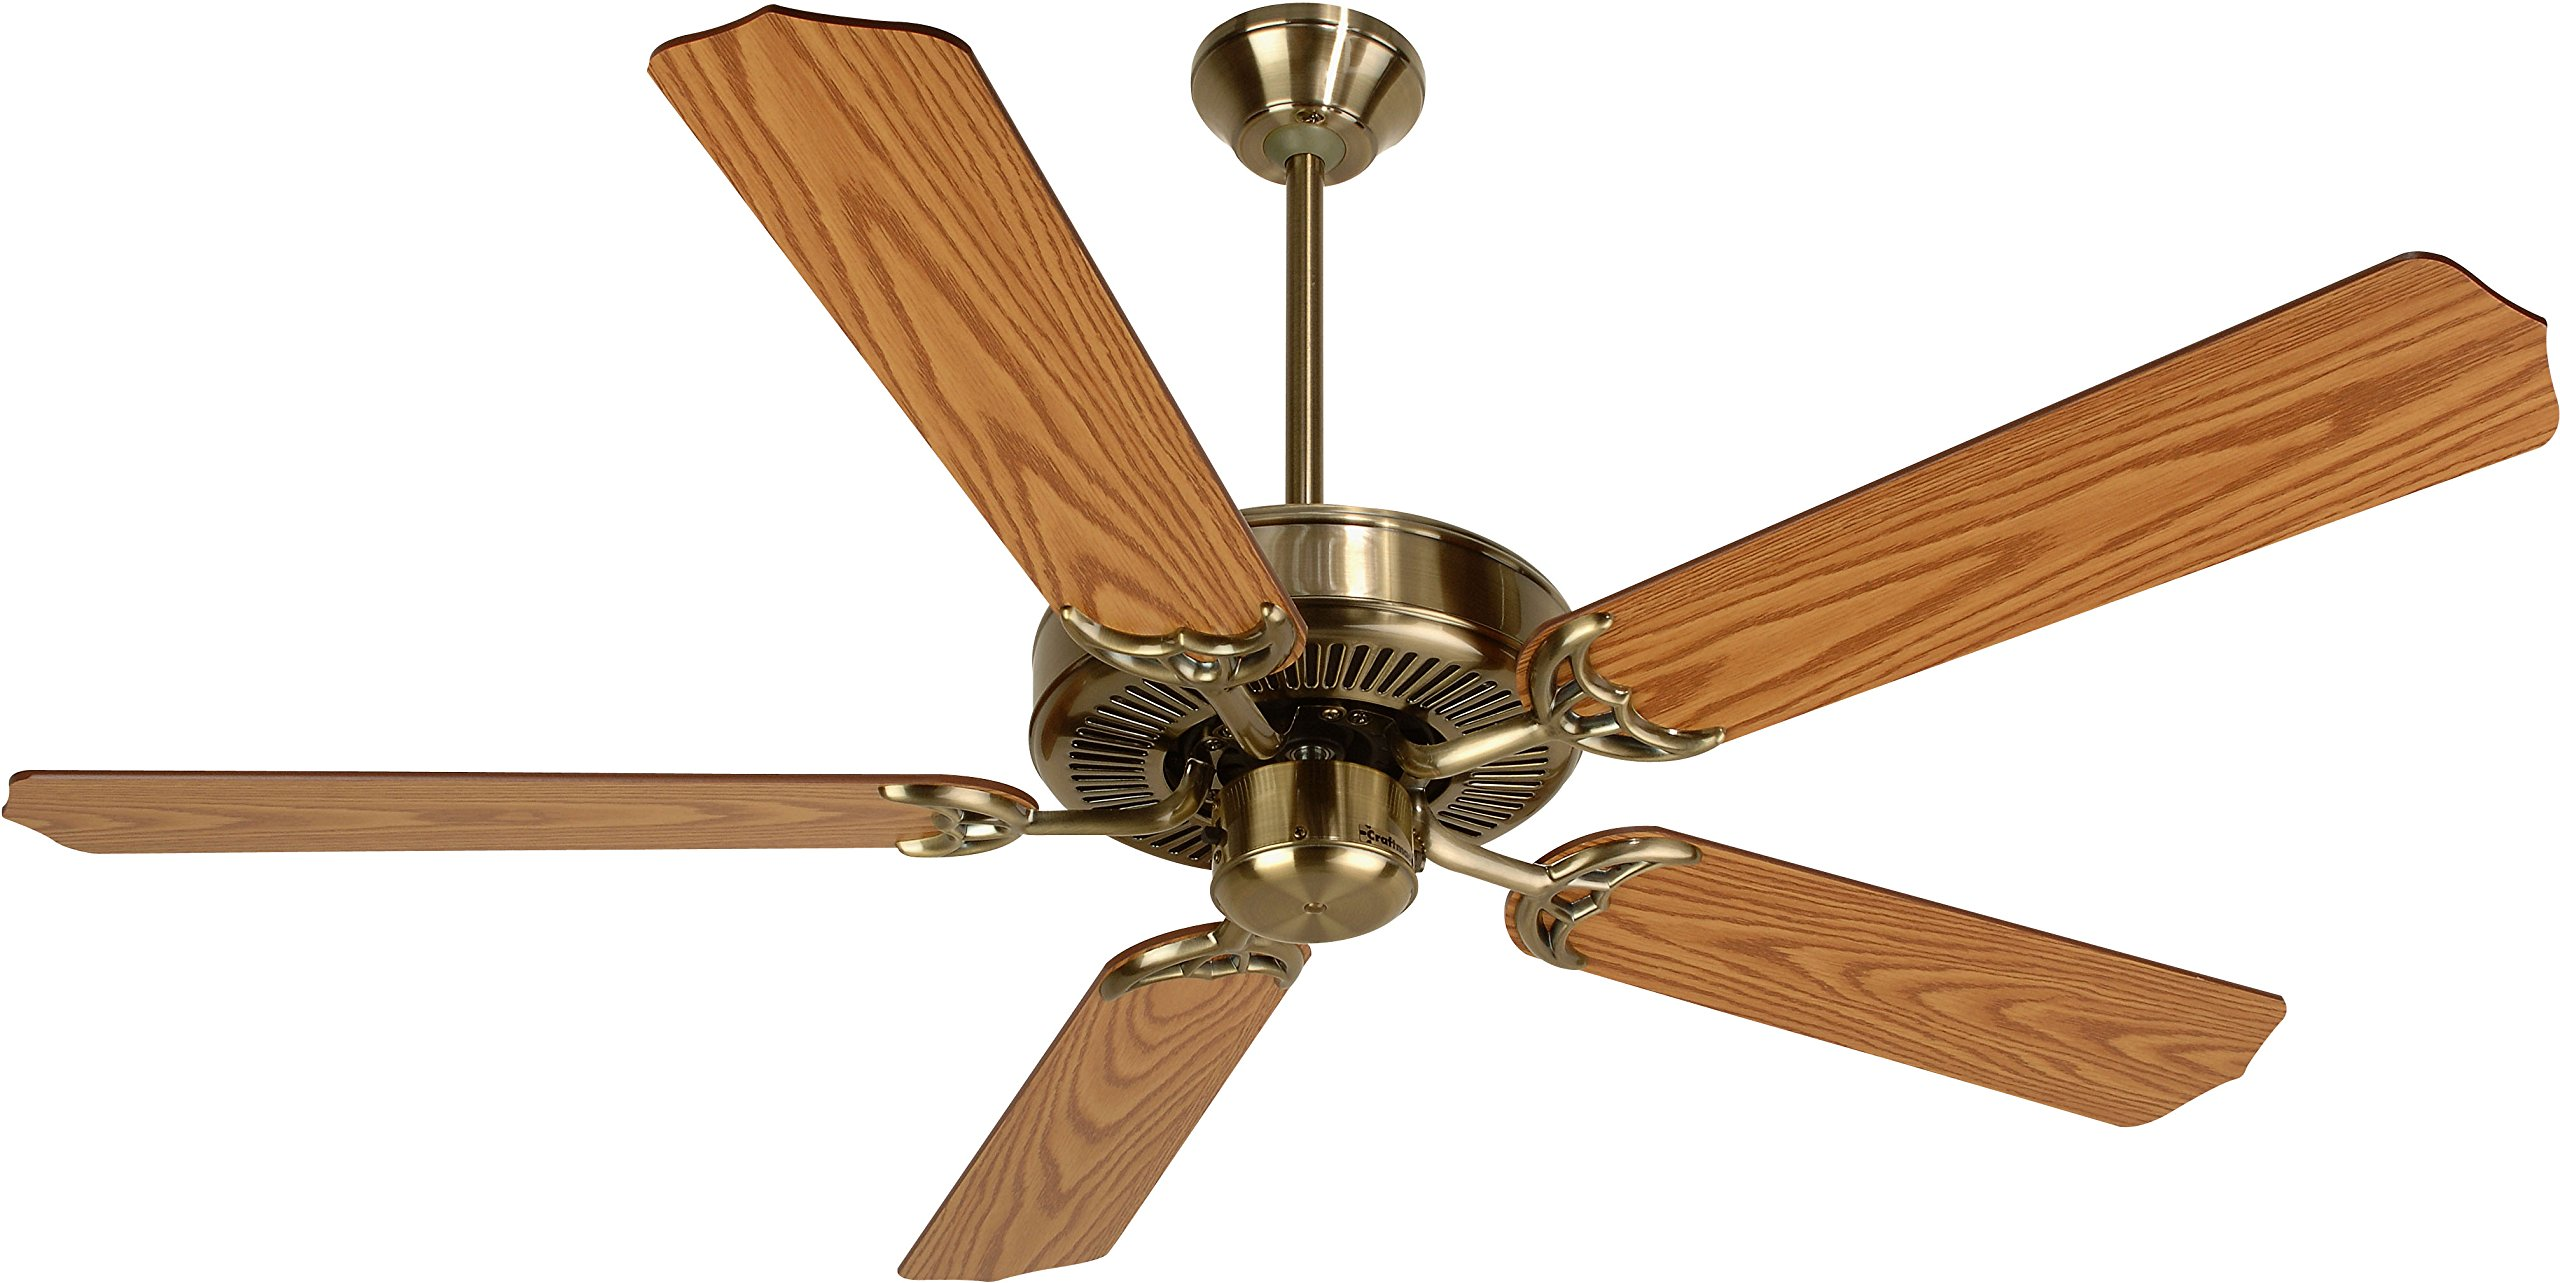 Craftmade K10620 Ceiling Fan Motor with Blades Included, 52''